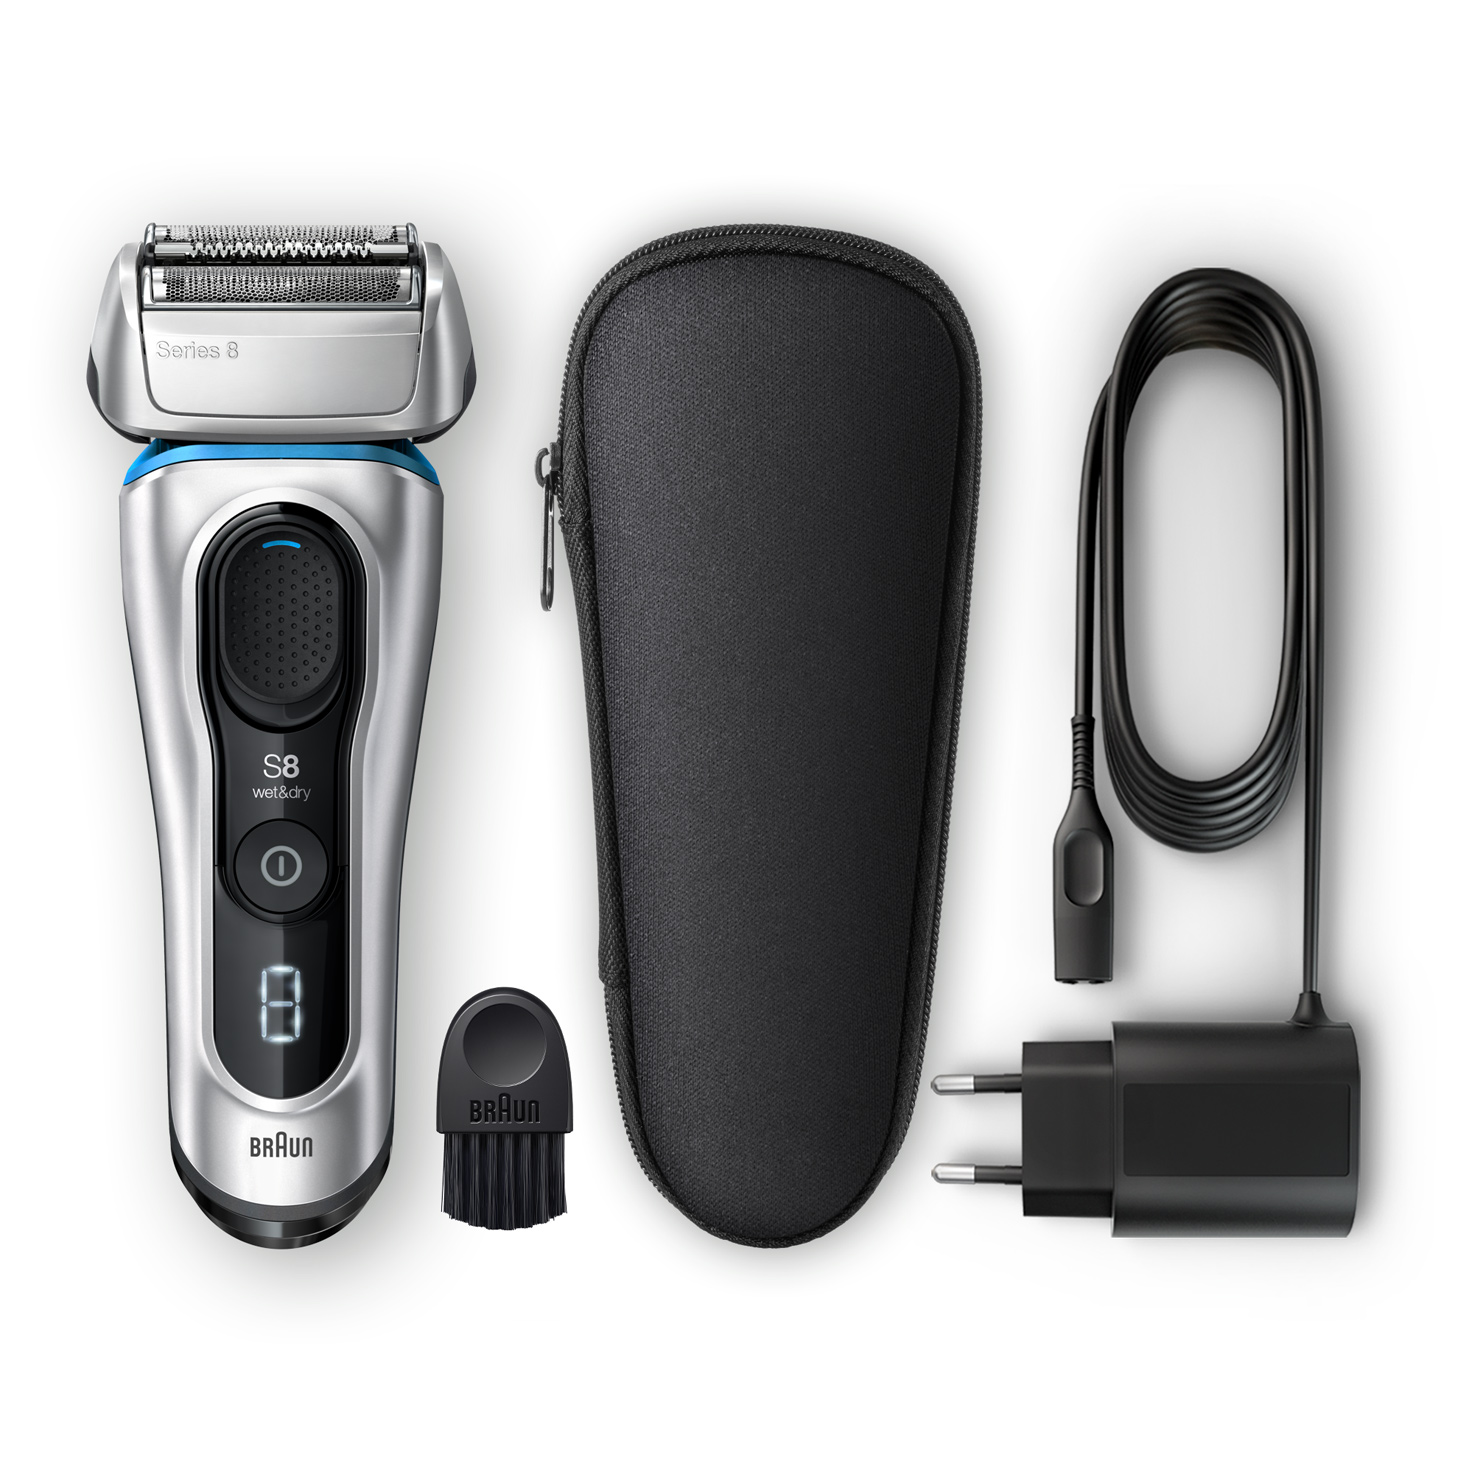 Series 8 8330s shaver - What´s in the box